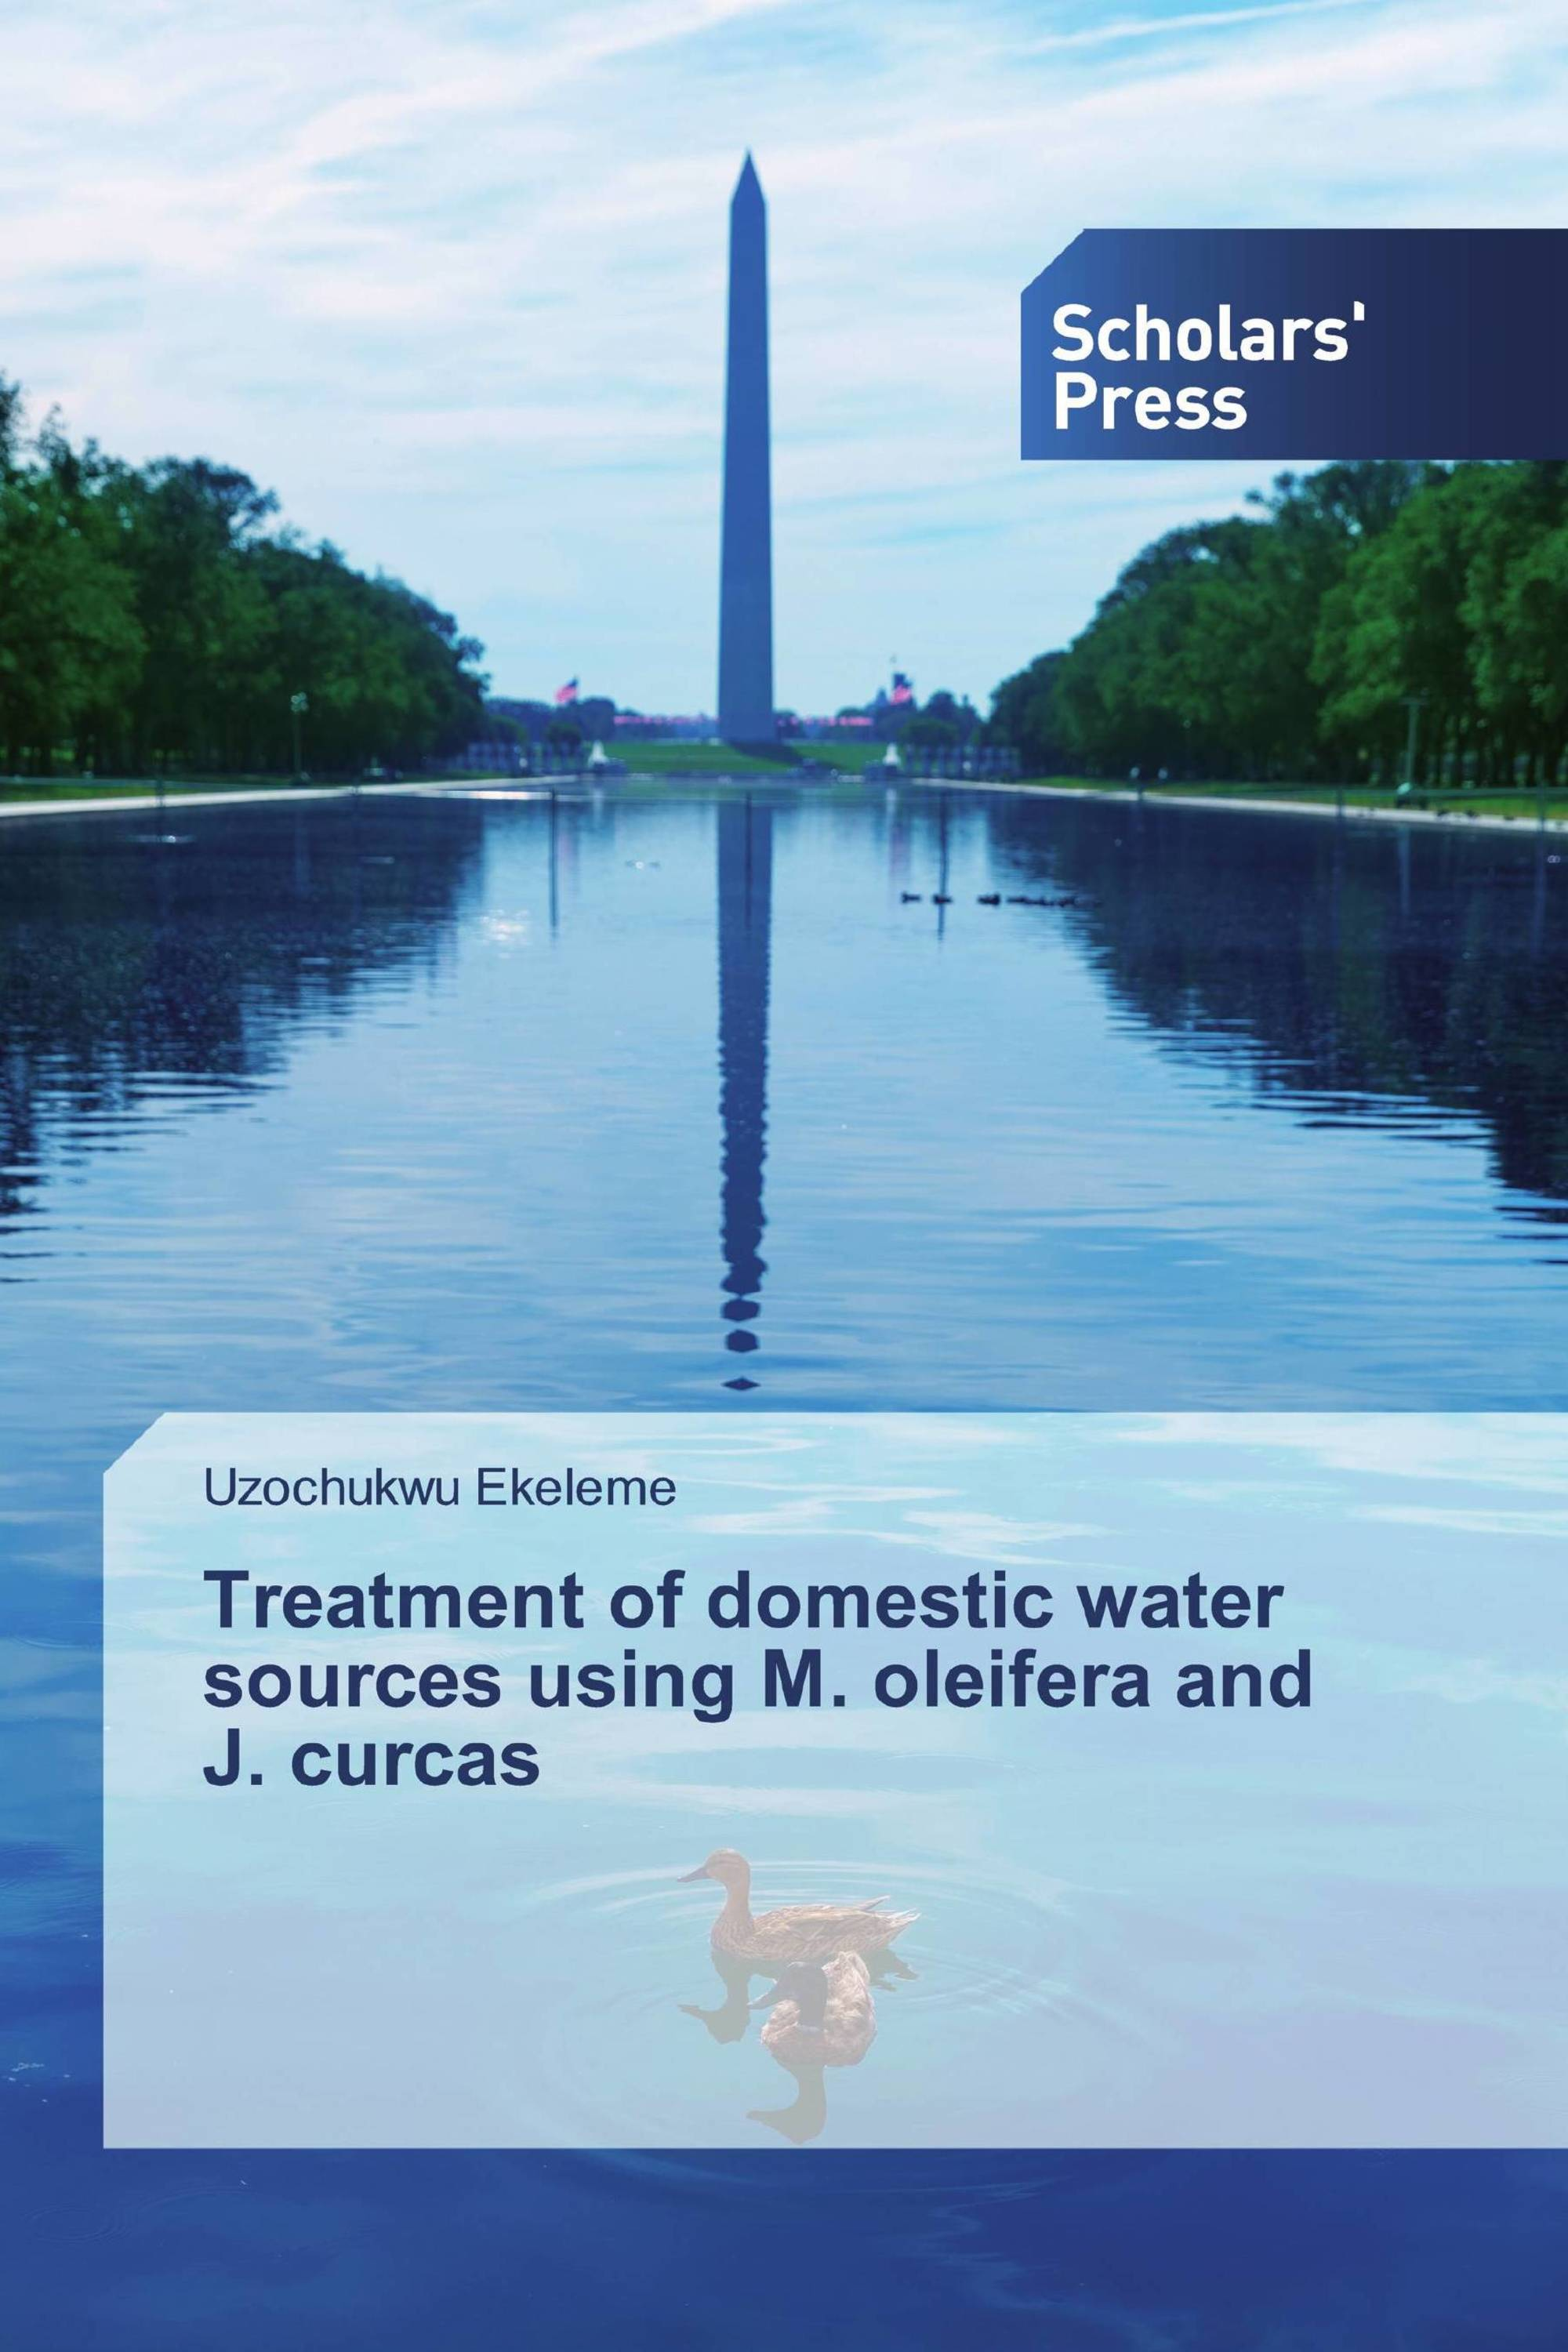 Treatment of domestic water sources using M. oleifera and J. curcas